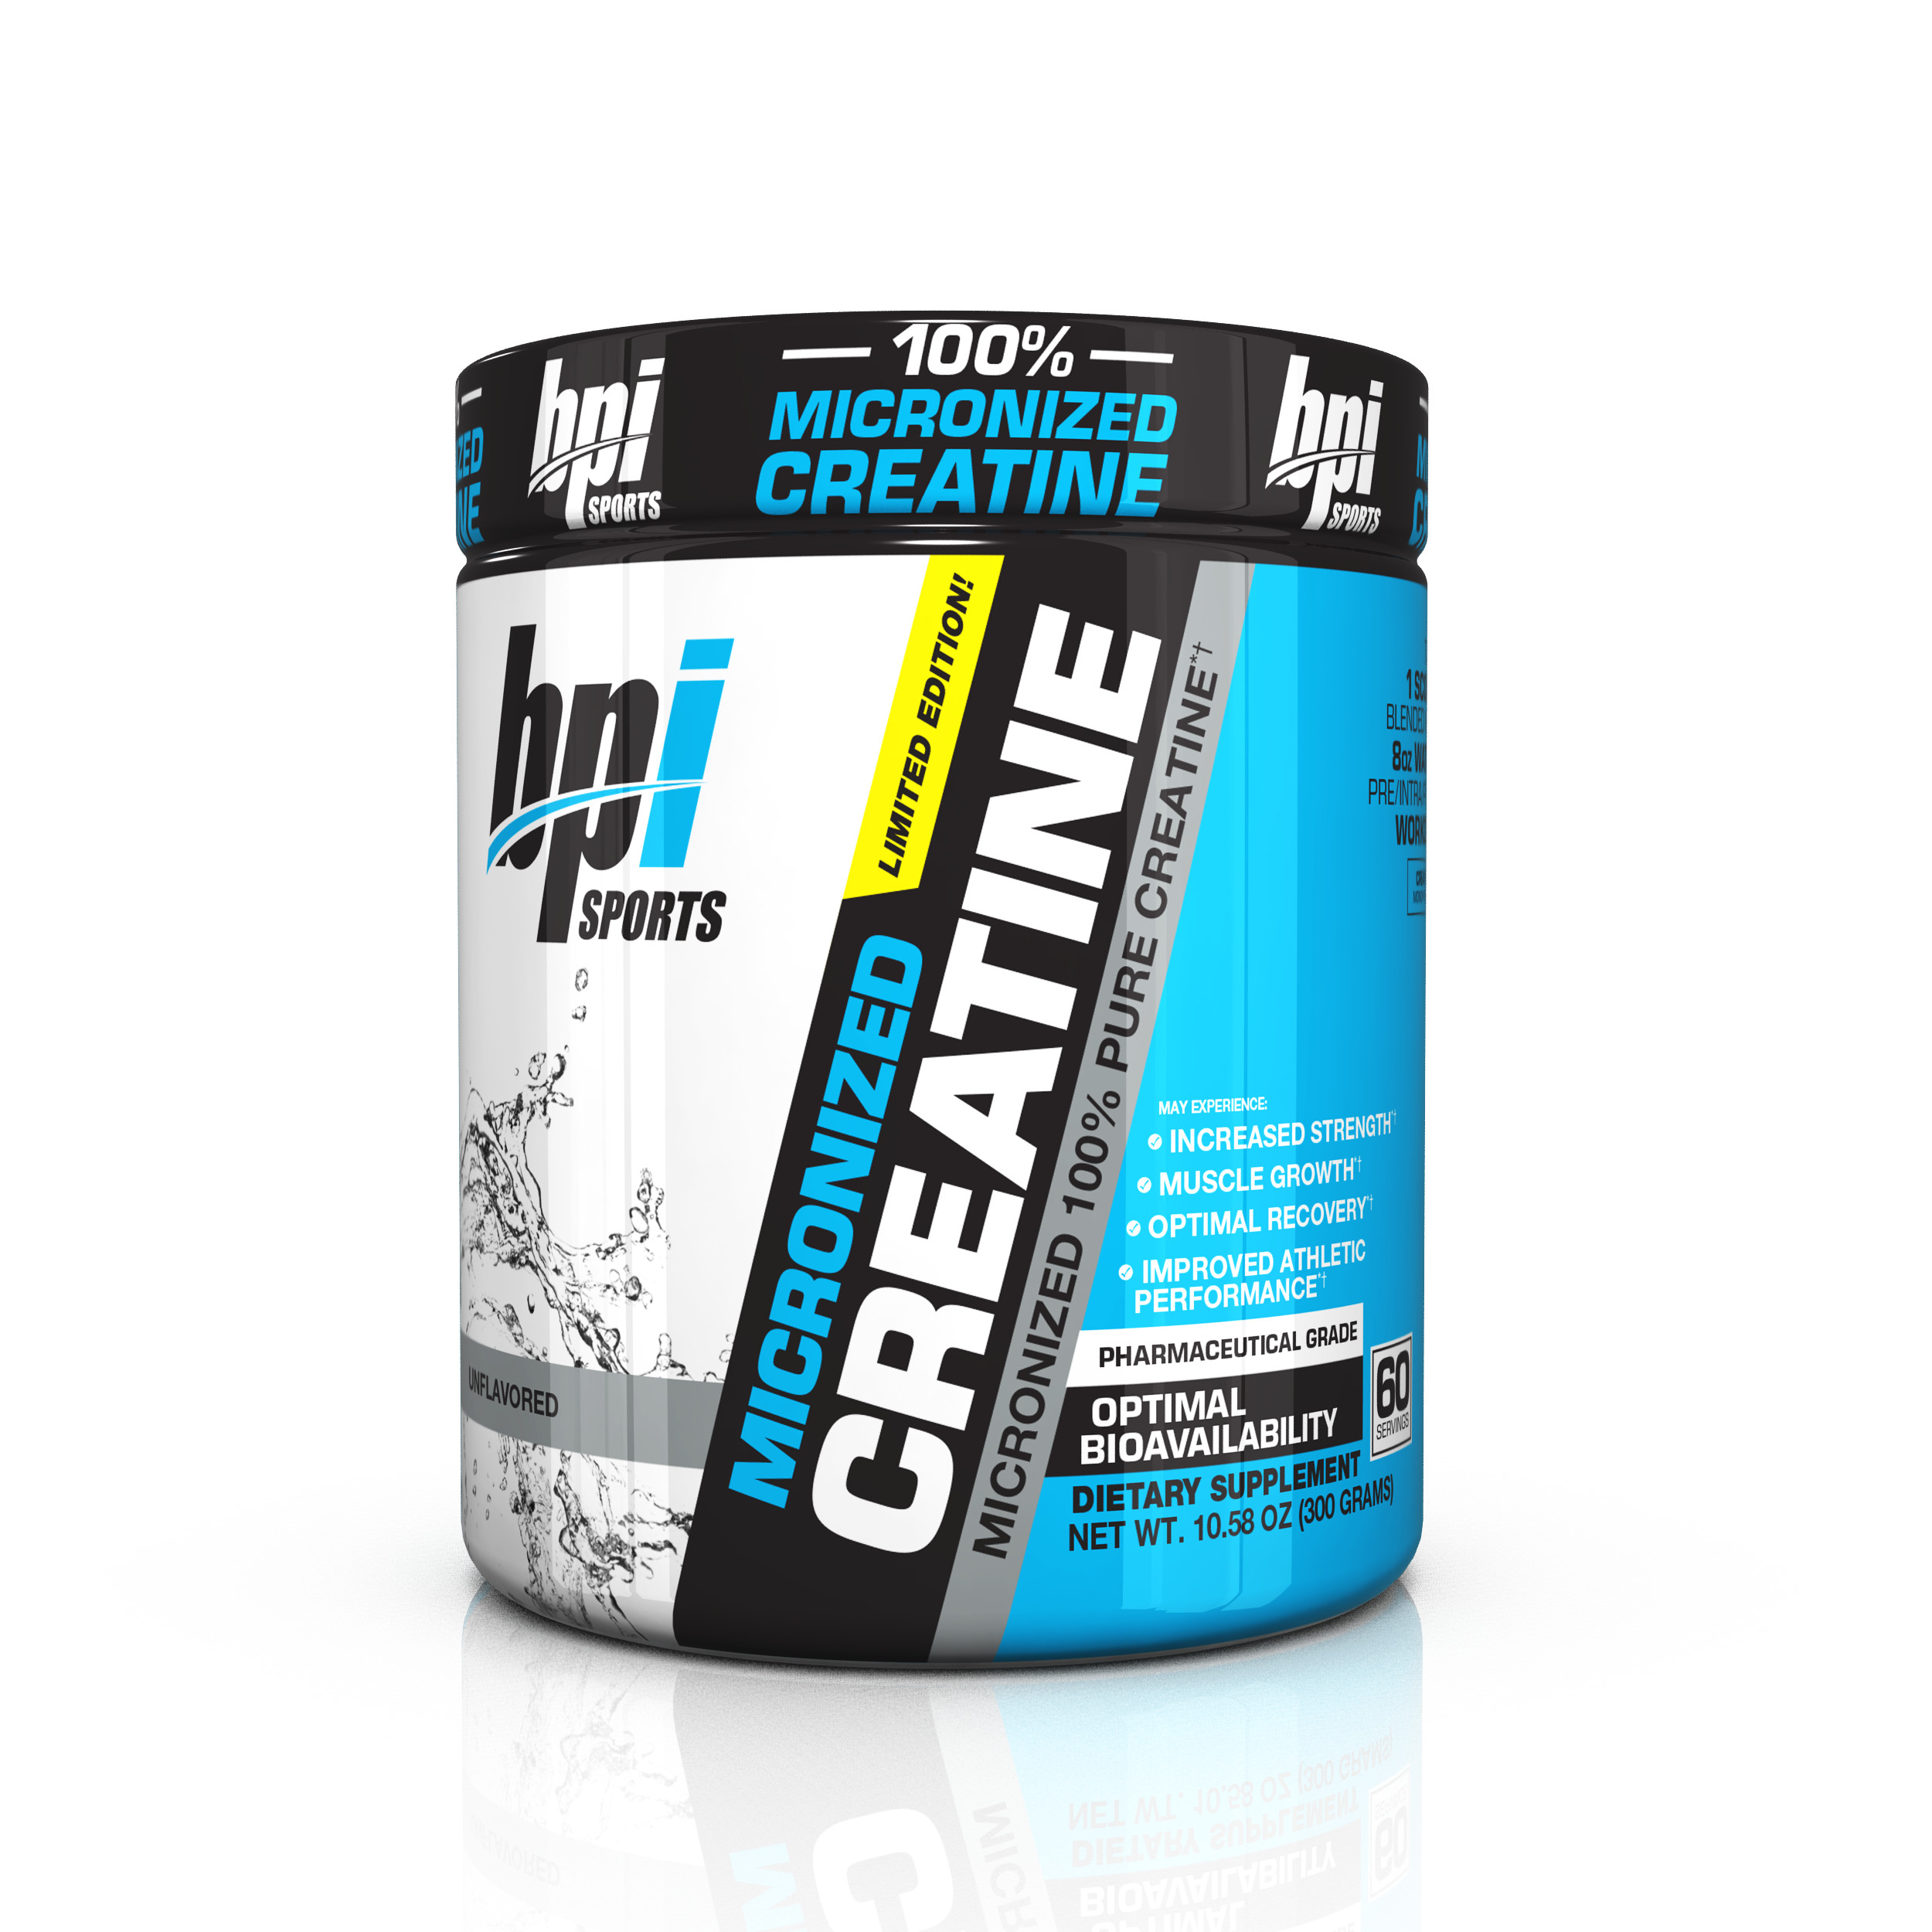 BPI Sports Micronized Creatine Powder, Unflavored, 60 Servings